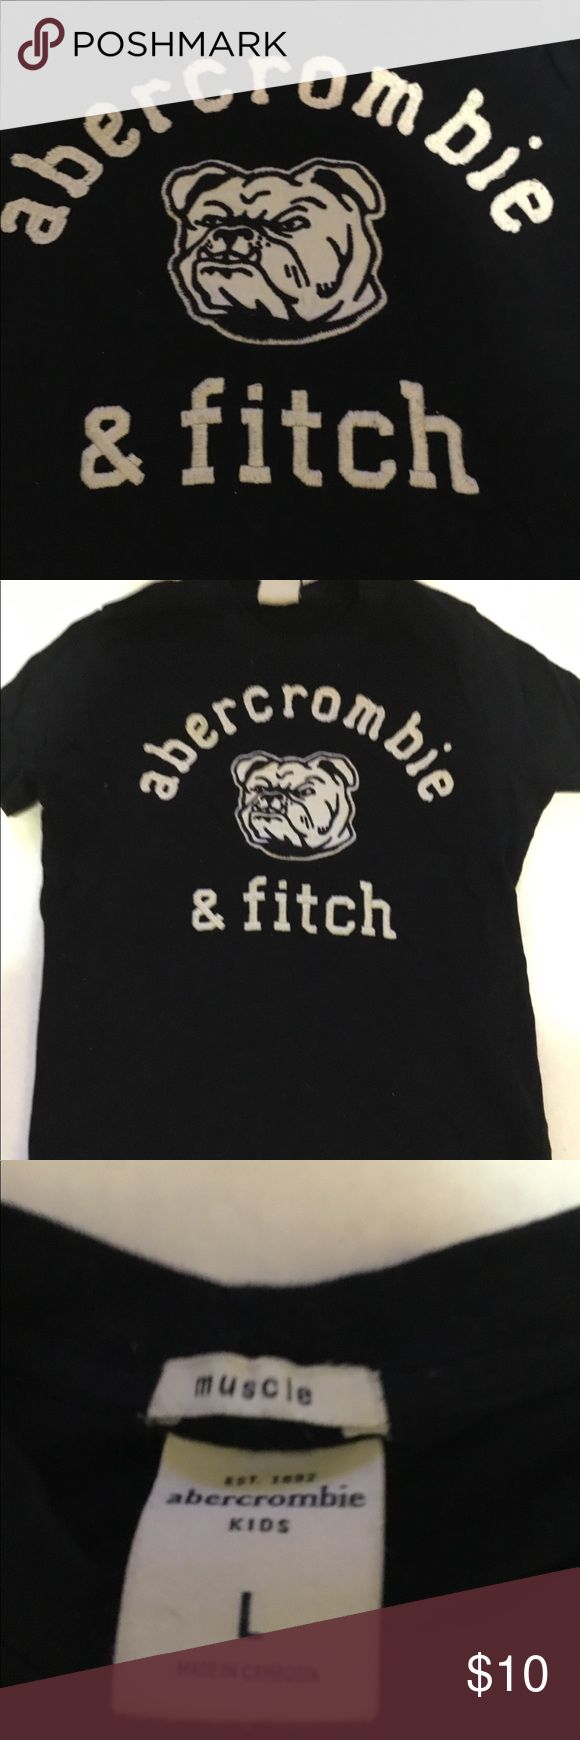 Abercrombie Kids bulldog muscle t shirt sz Large Abercrombie Kids bulldog muscle t shirt sz Large.  Nice tee.  Sewn/embroidered.  Black and white.  Minimal color loss.  No rips or stains. abercrombie kids Shirts & Tops Tees - Short Sleeve